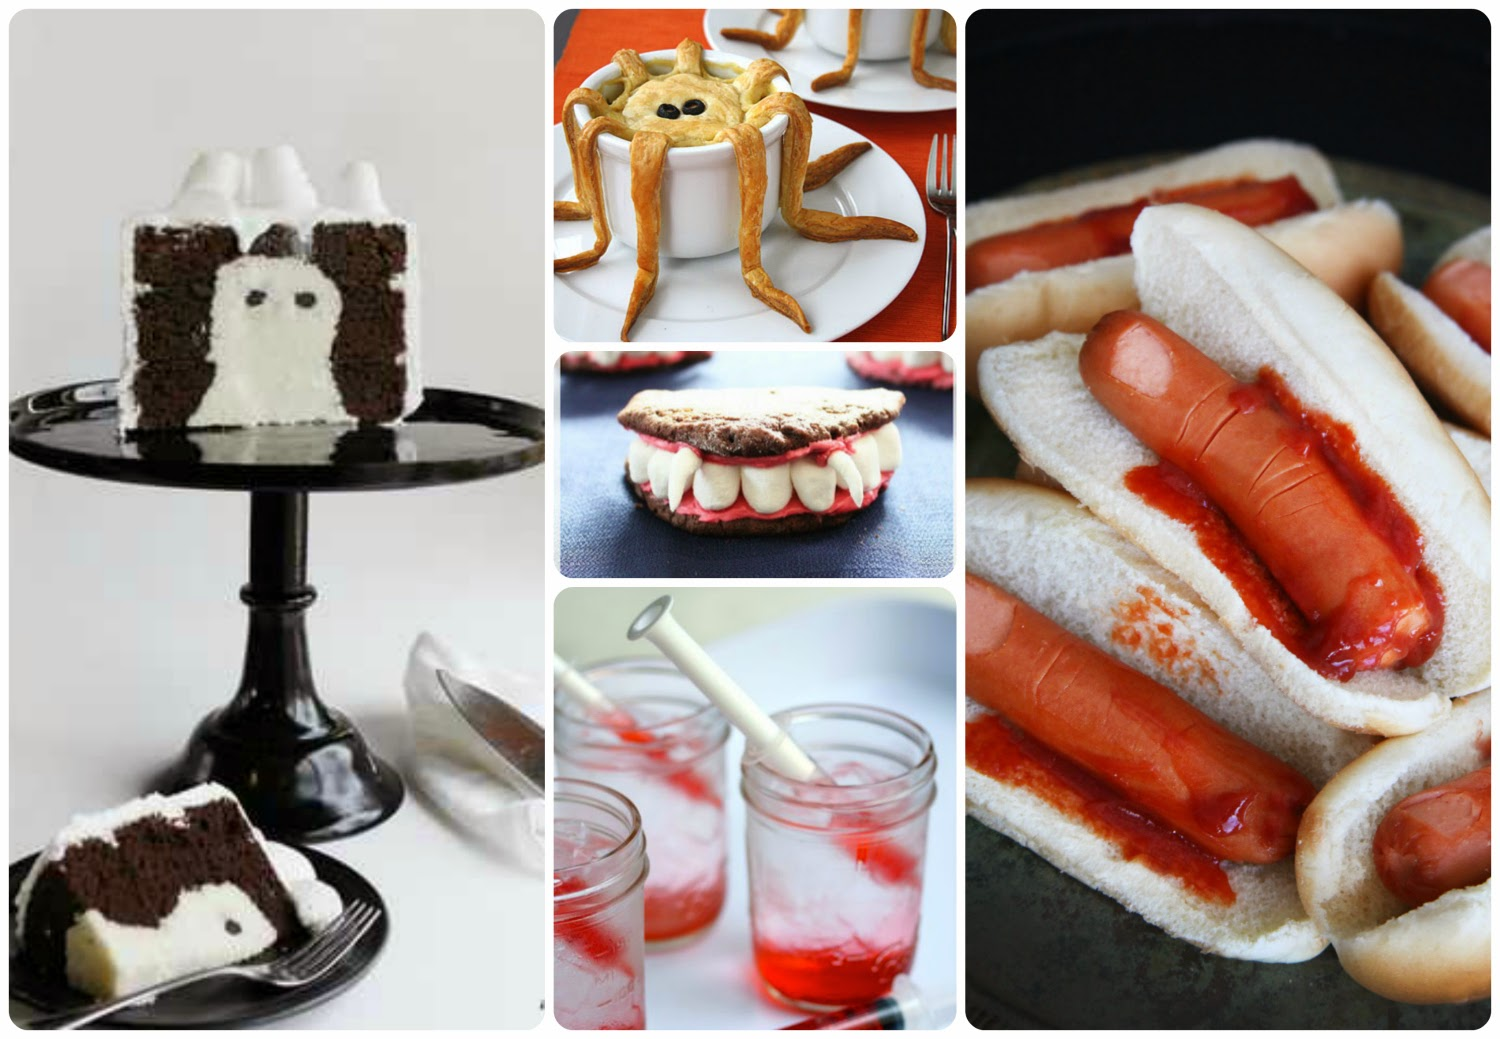 Some spooky food ideas for Halloween